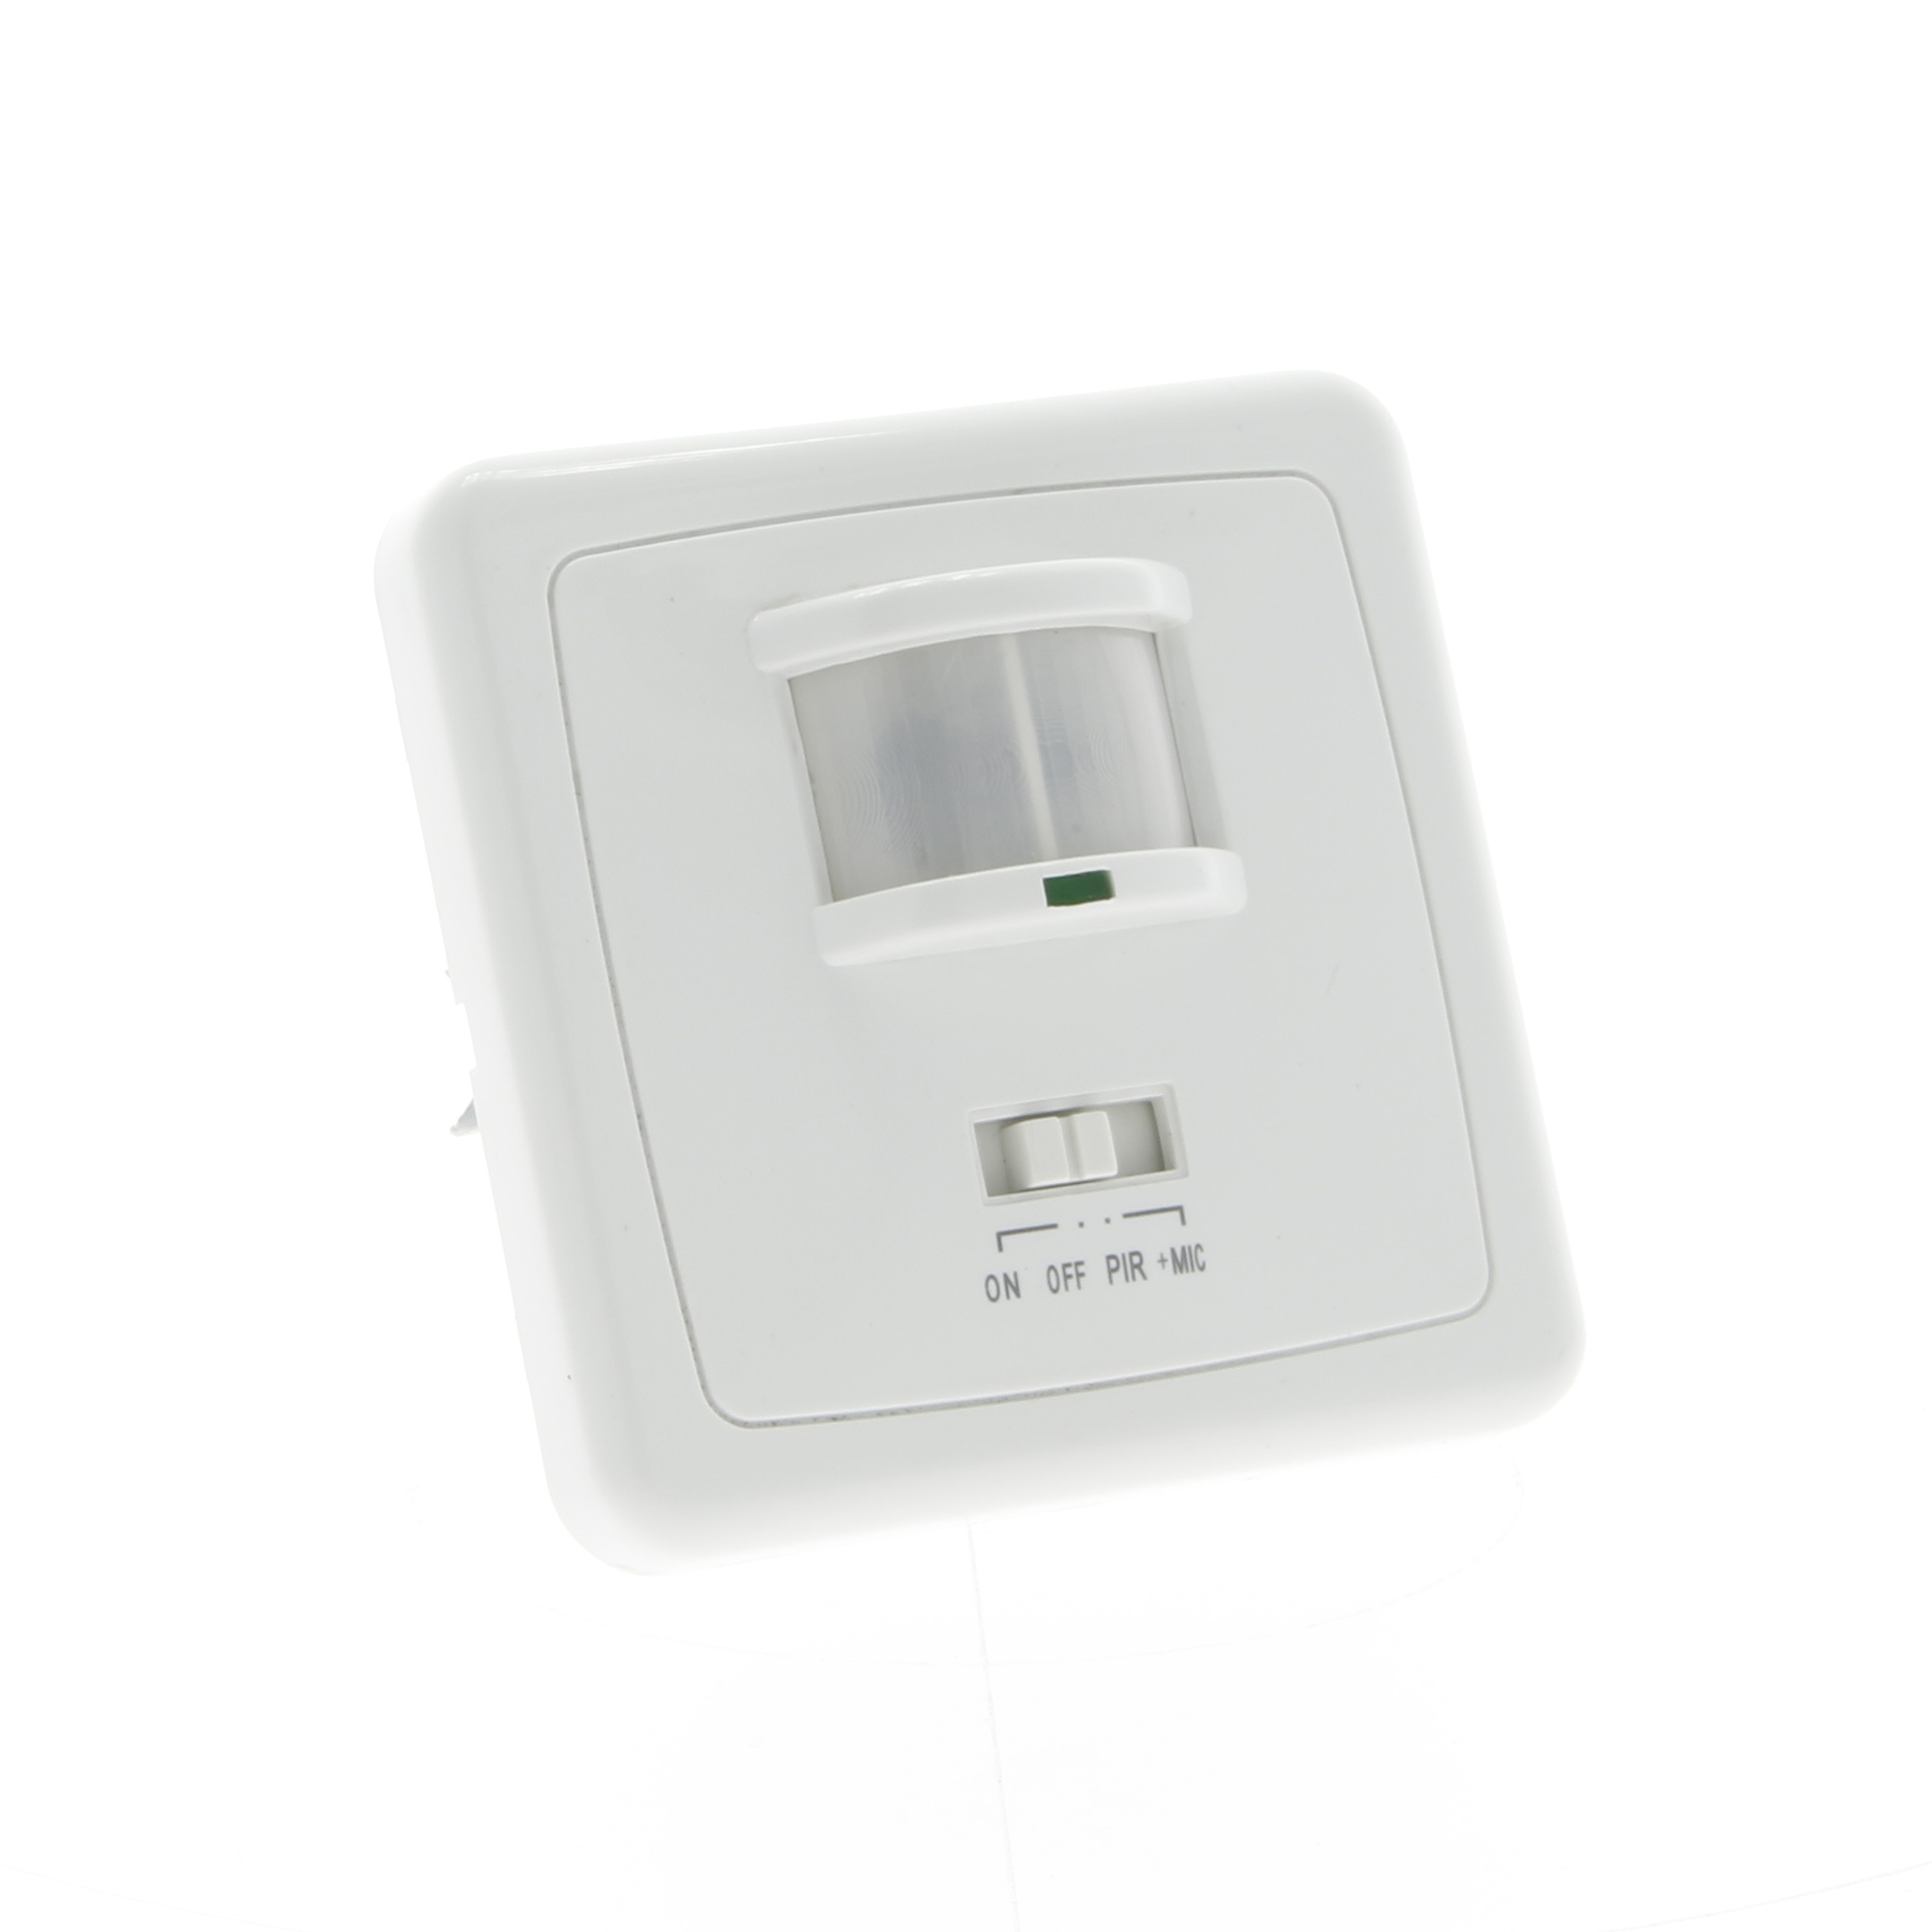 Flush mounted motion sensor wall 500W 120°